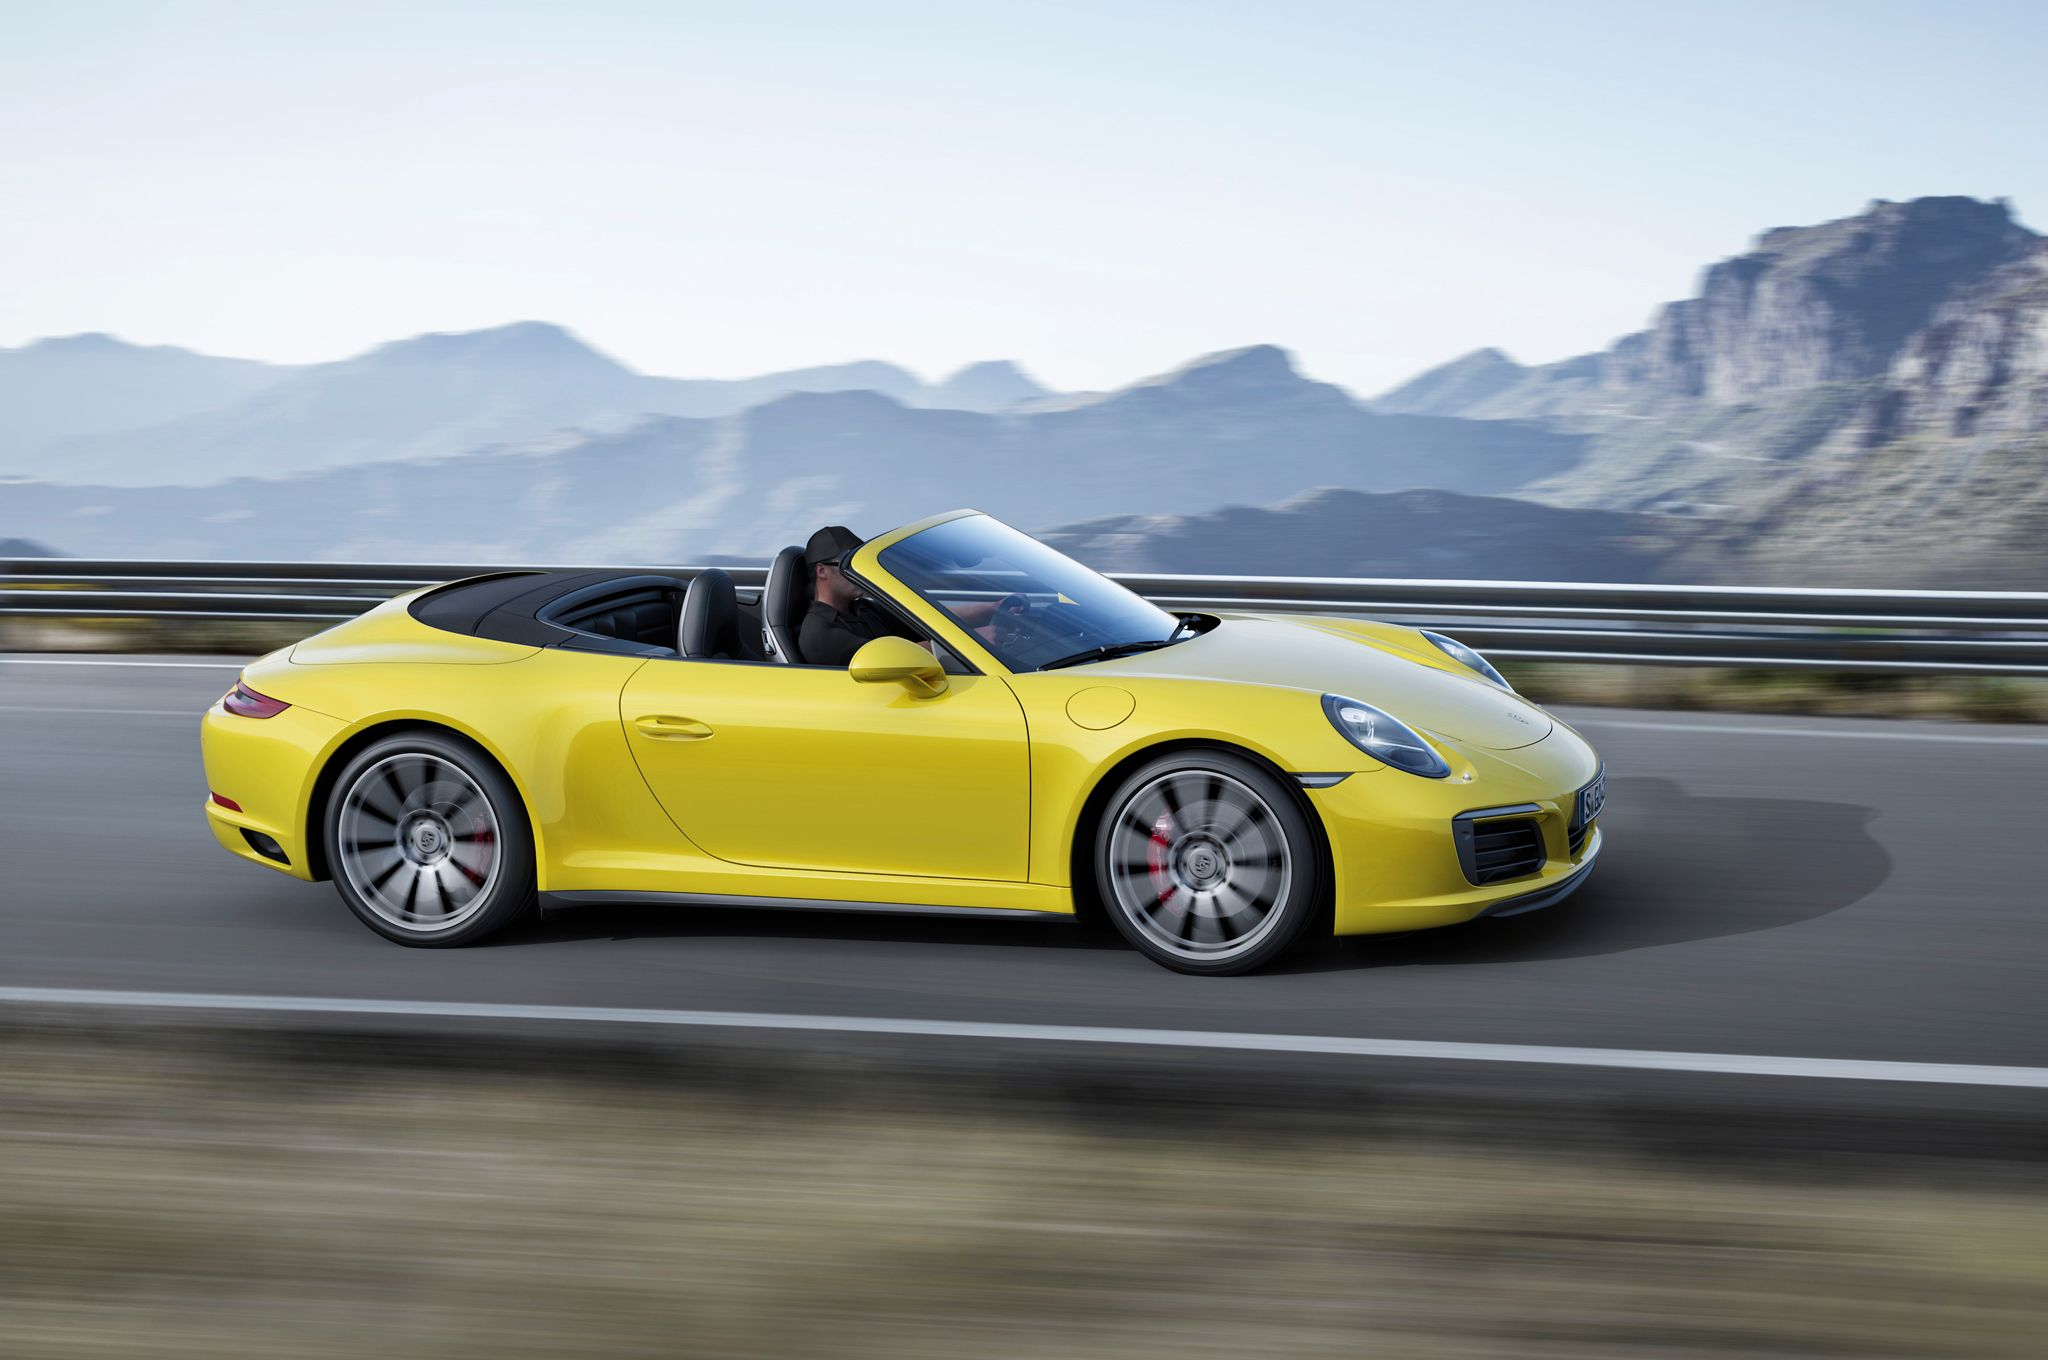 2017 Porsche 911 Carrera 4S Cabriolet photo - 4